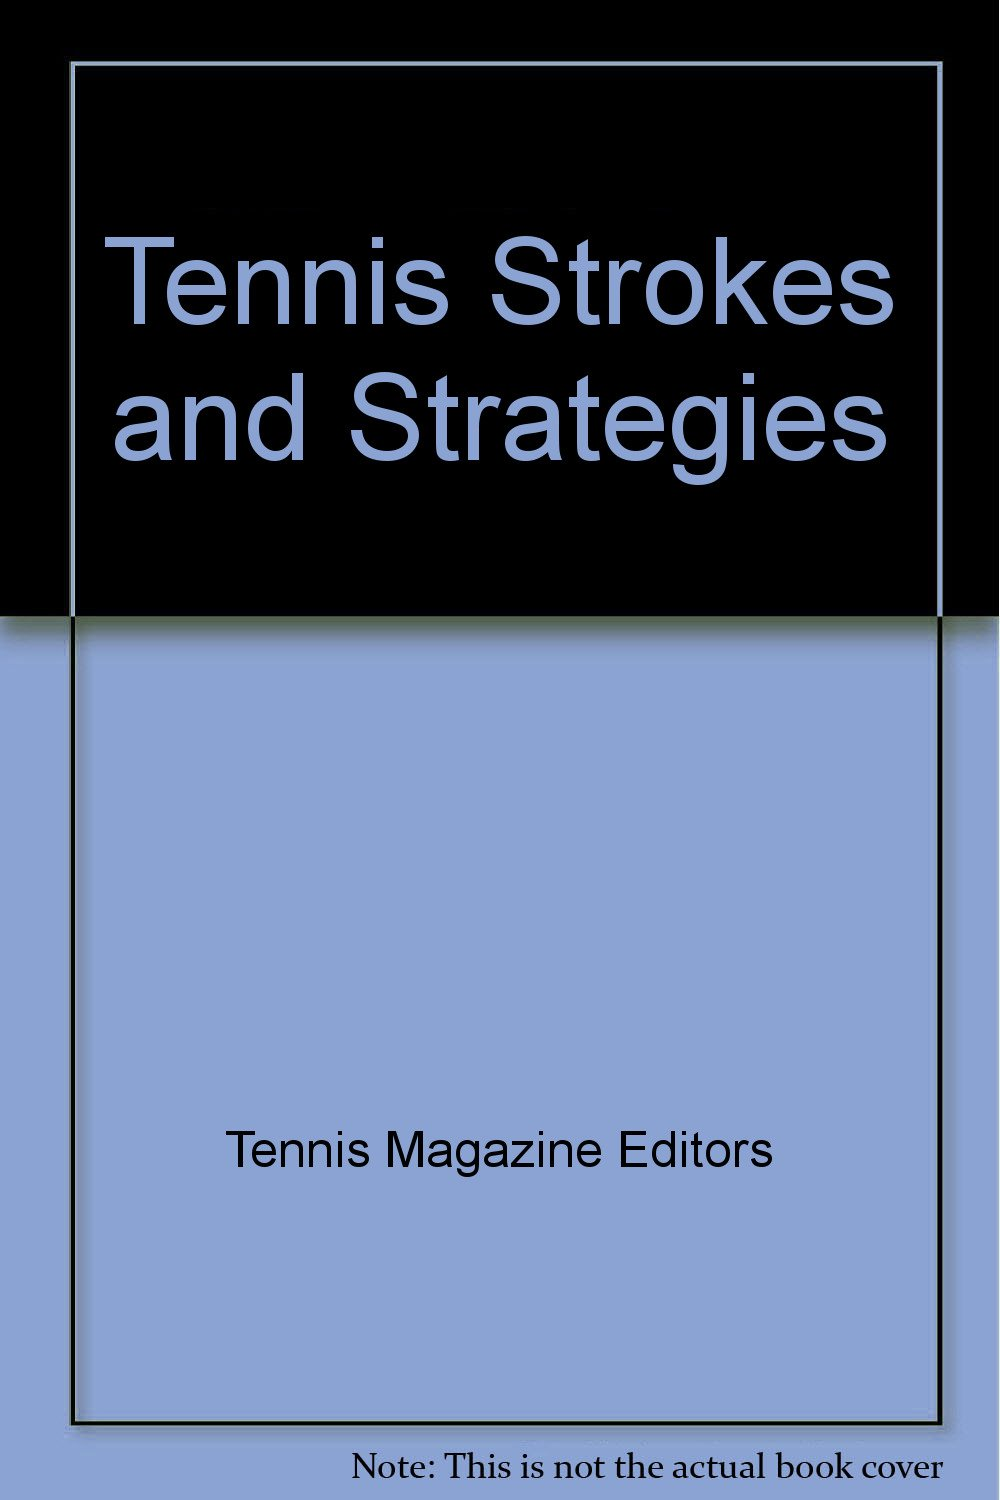 Tennis Strokes and Strategies